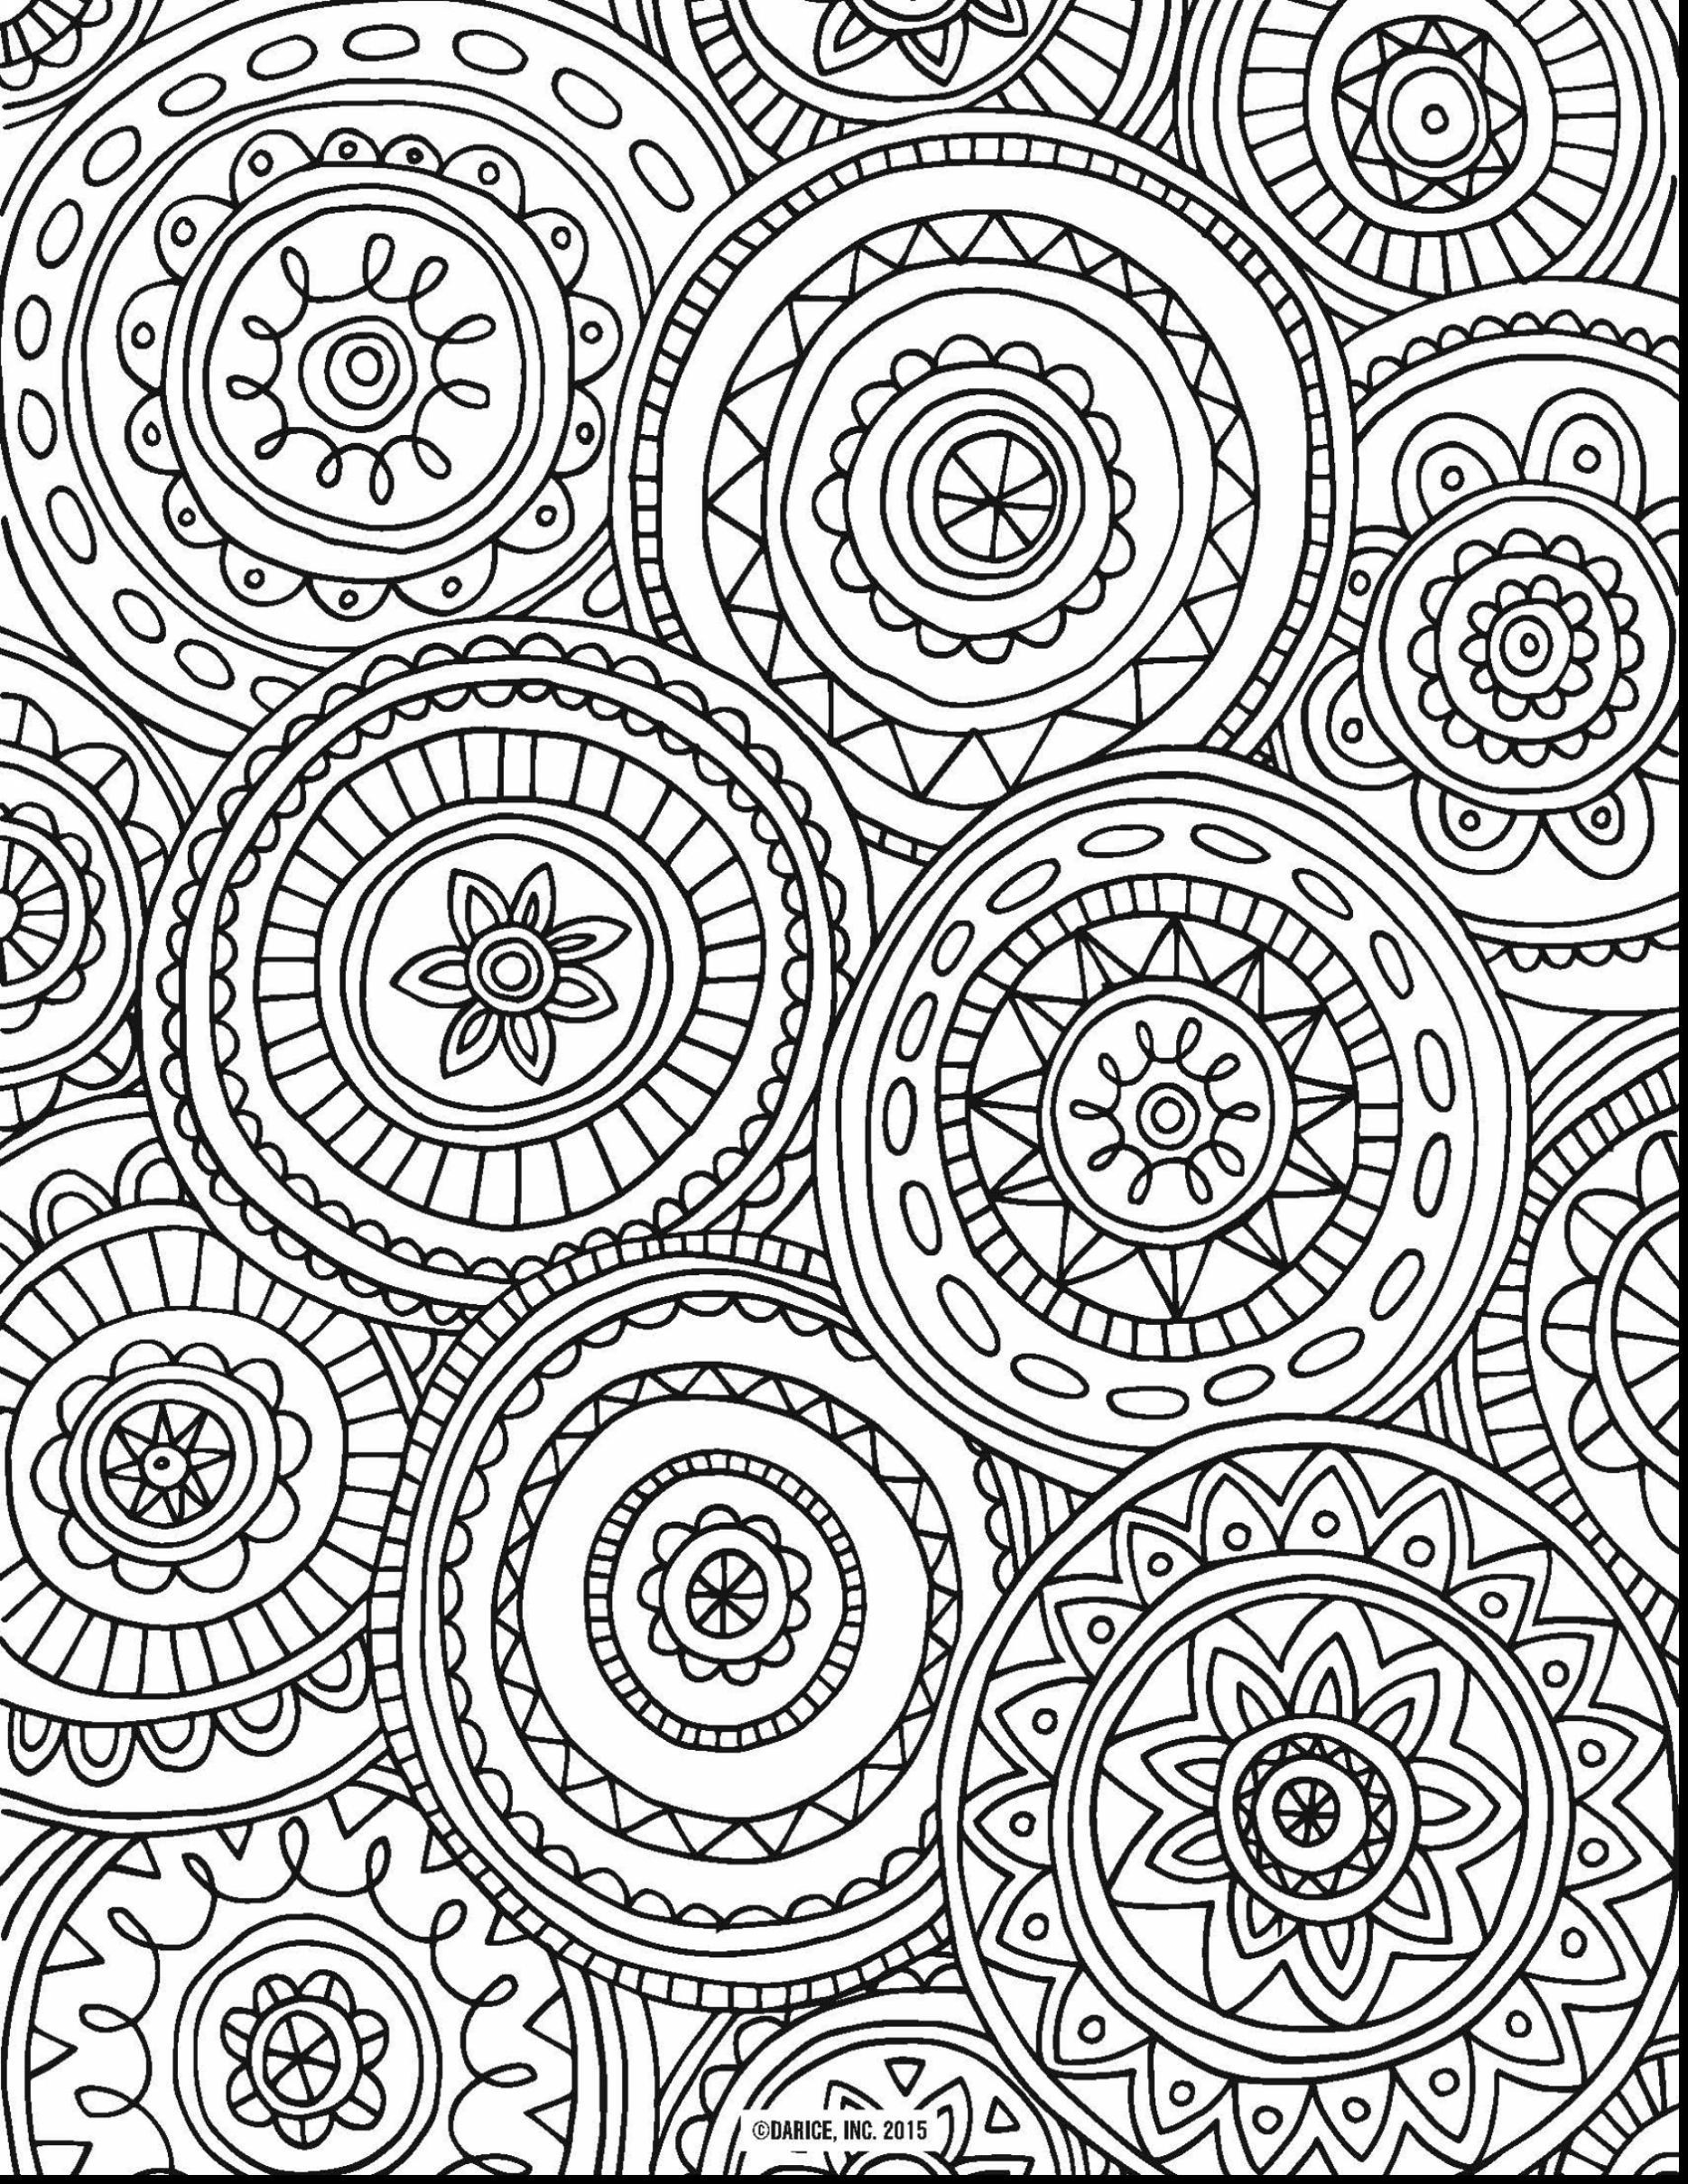 Best Of Free Printable Mandala Coloring Pages For Adults Pdf - Free Printable Mandalas Pdf